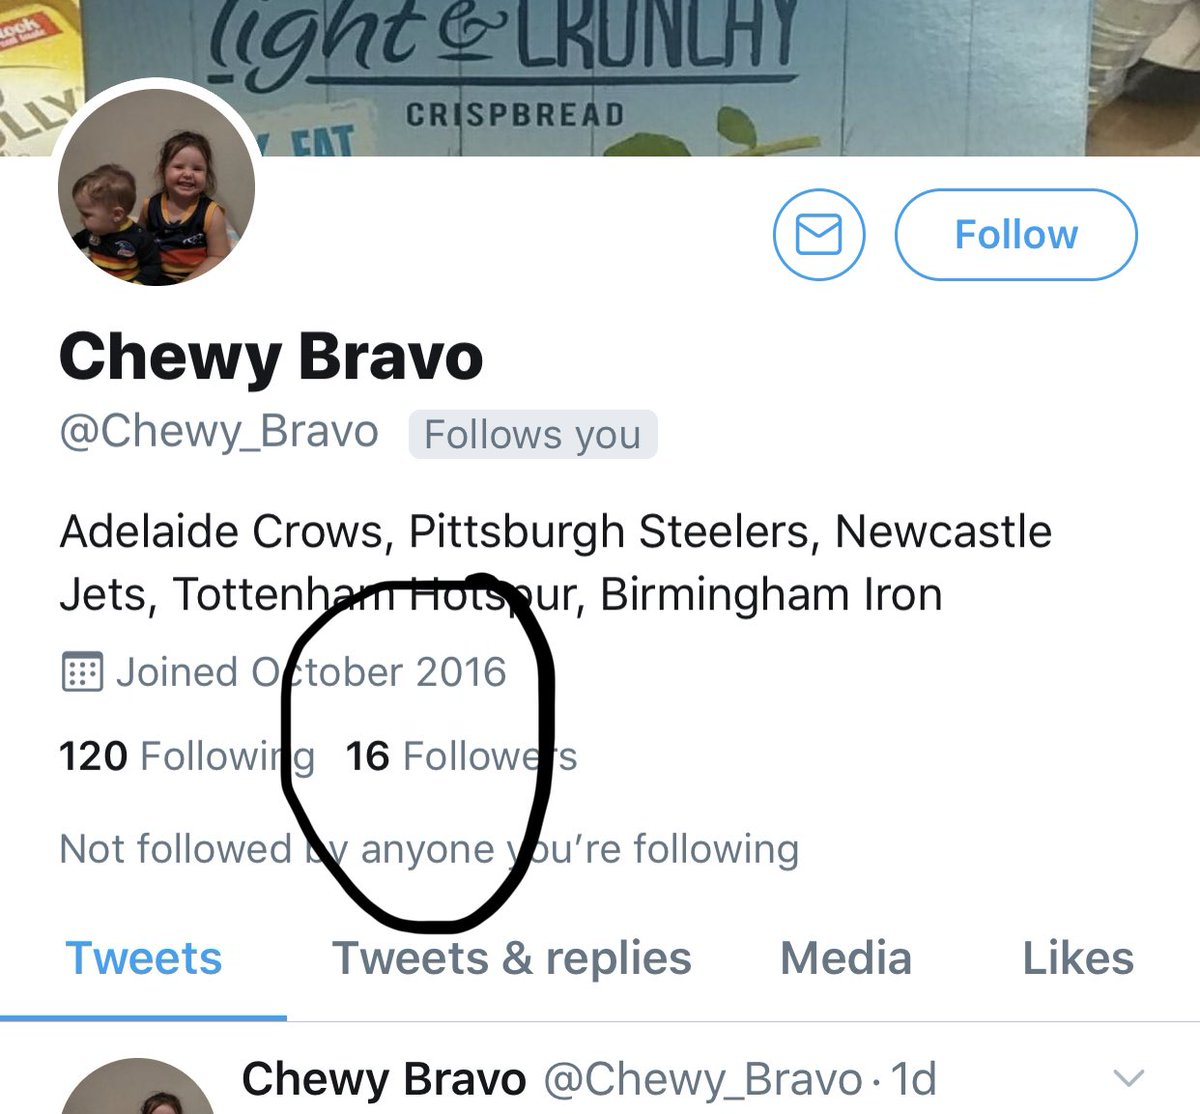 @Chewy_Bravo With that sort of gold this following will sky rocket